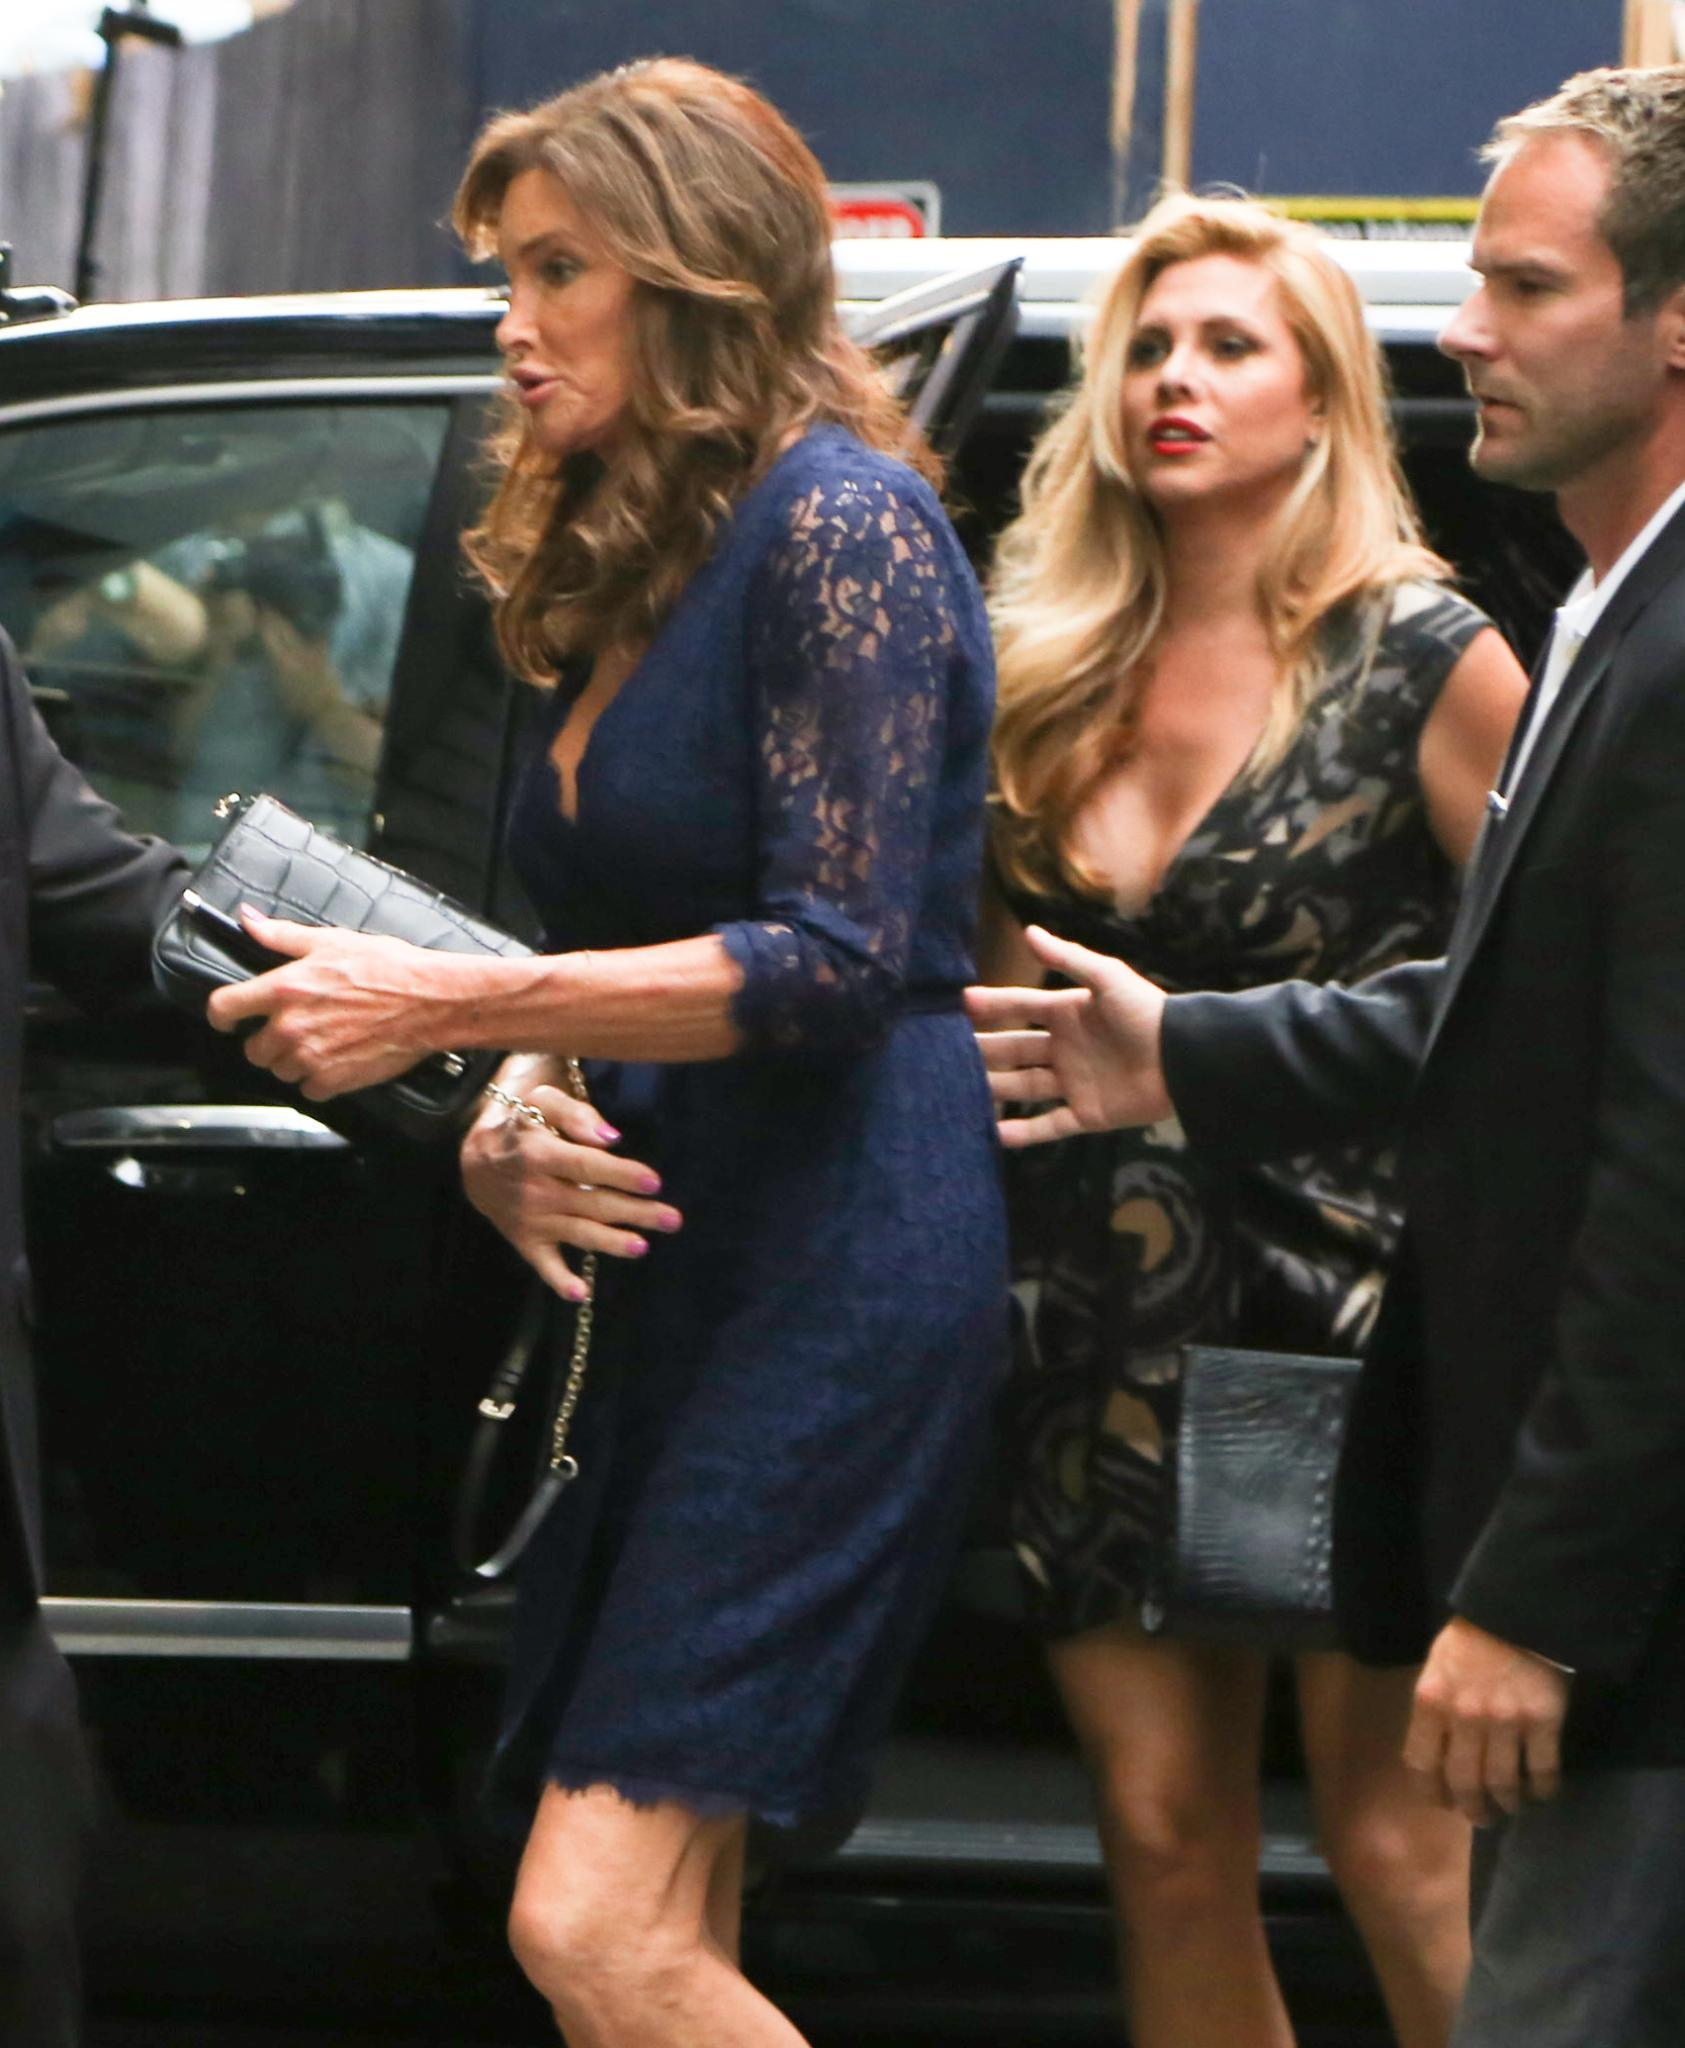 Caitlyn Jenner, Candis Cayne